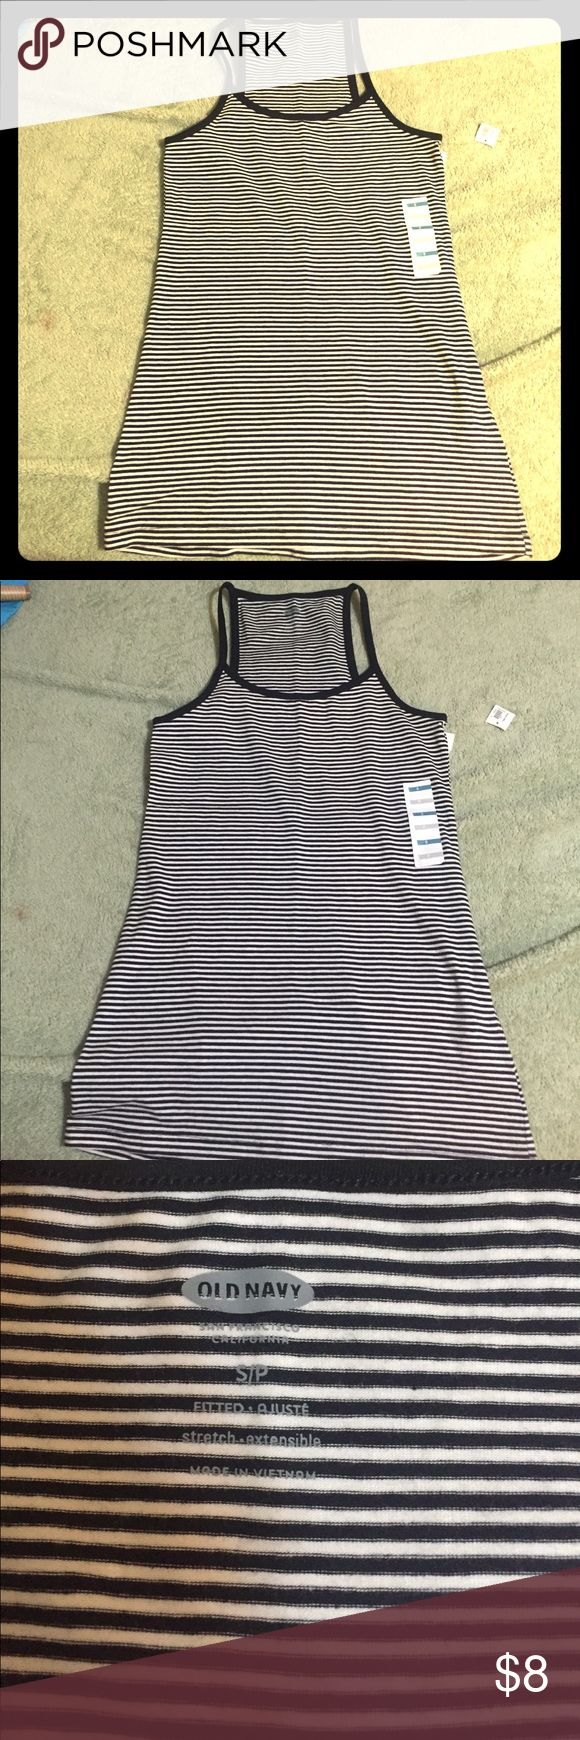 🐬 Casual Striped Tank top Size Small 😎 Old Navy tank top, thin black and white stripes.  Size small, 94% cotton and 6% spandex. Fitted and stretchable!  NWT Old Navy Tops Tank Tops